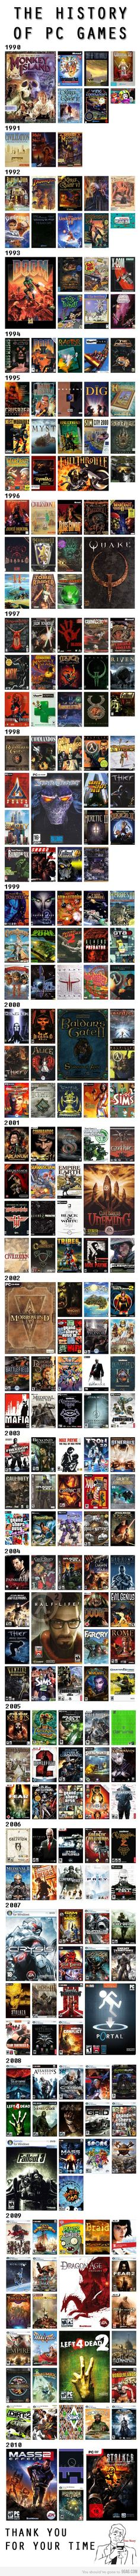 History of PC Games -- Born in '92, been playing since '98. Good to see where I started at. Lots of great games on this list.